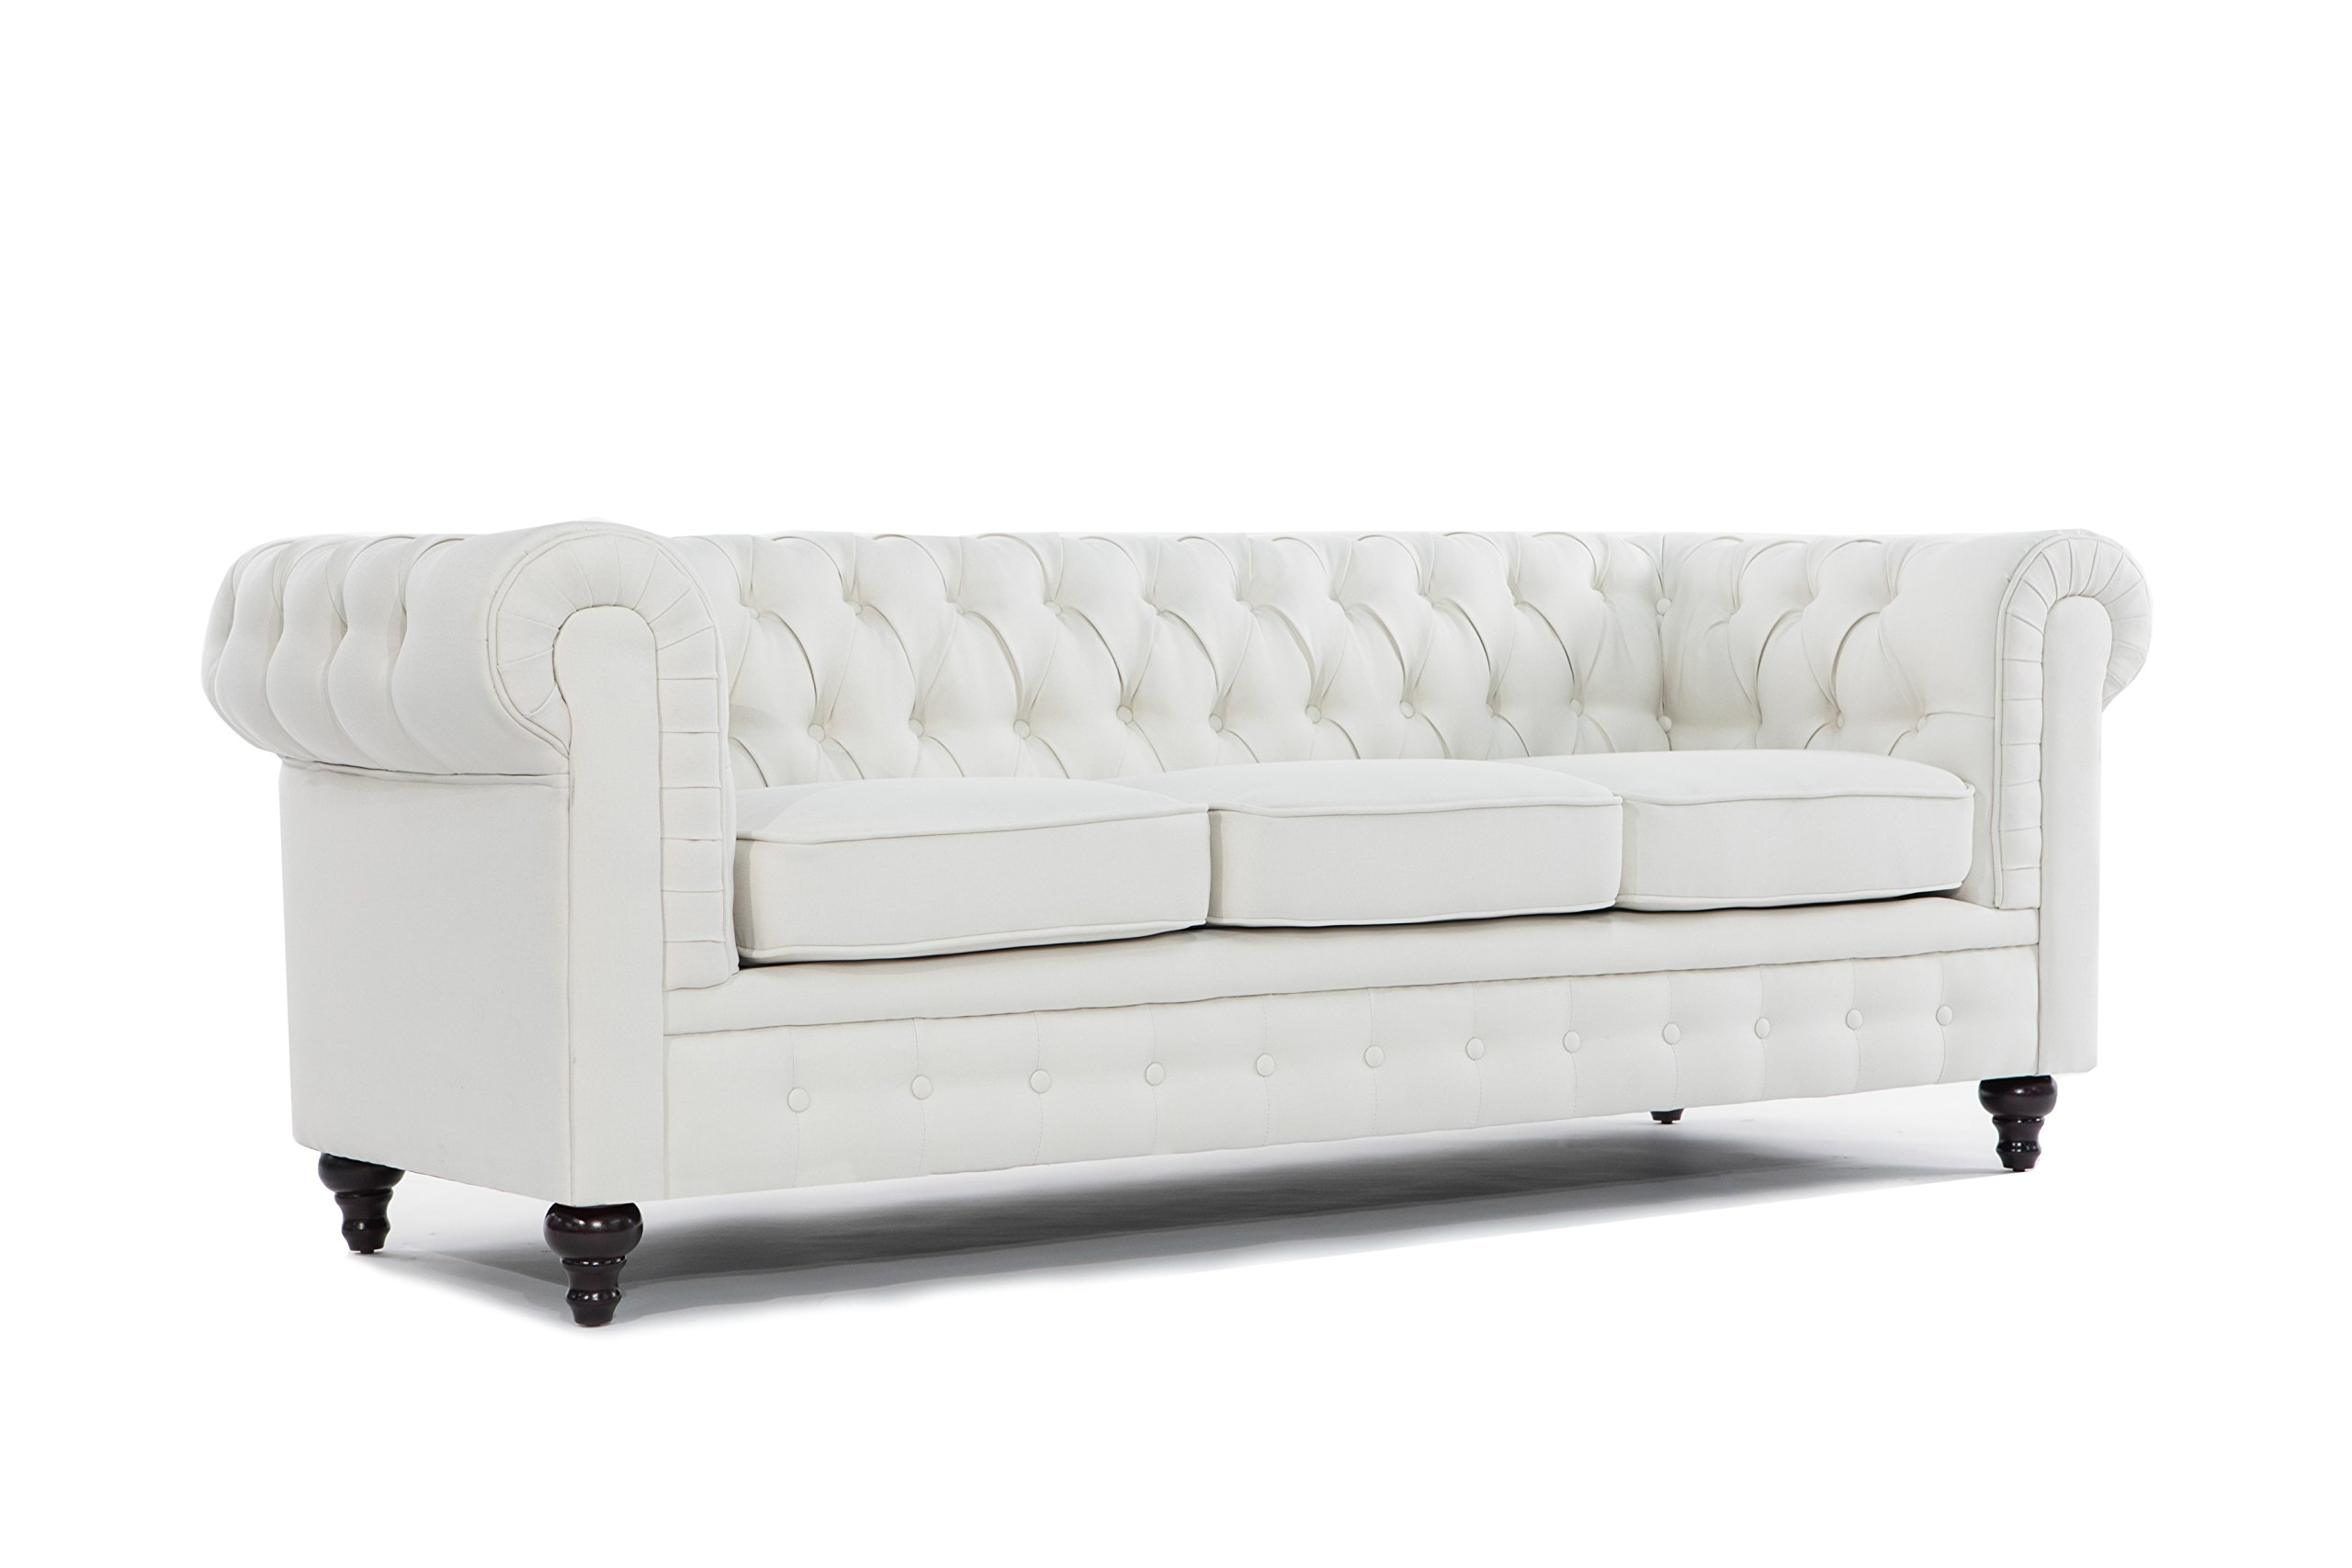 "BD Home Furnishings Classic Scroll Arm Button Tufted Chesterfield Style Sofa - Beige - Beautiful Classic Scroll Arm Sofa With Deep Button Tufted Accents Sophisticated but Casual Linen upholstery fits any traditional decor style, Dark Wood Bun Feet - Linen Upholstery, Dark wood legs that screw in to the base Dimensions: 90"" x 35"" x 31"" - Seat: 76"" x 21"" - Back rest: 13"" (inches) - sofas-couches, living-room-furniture, living-room - 71cXJCgeCCL -"